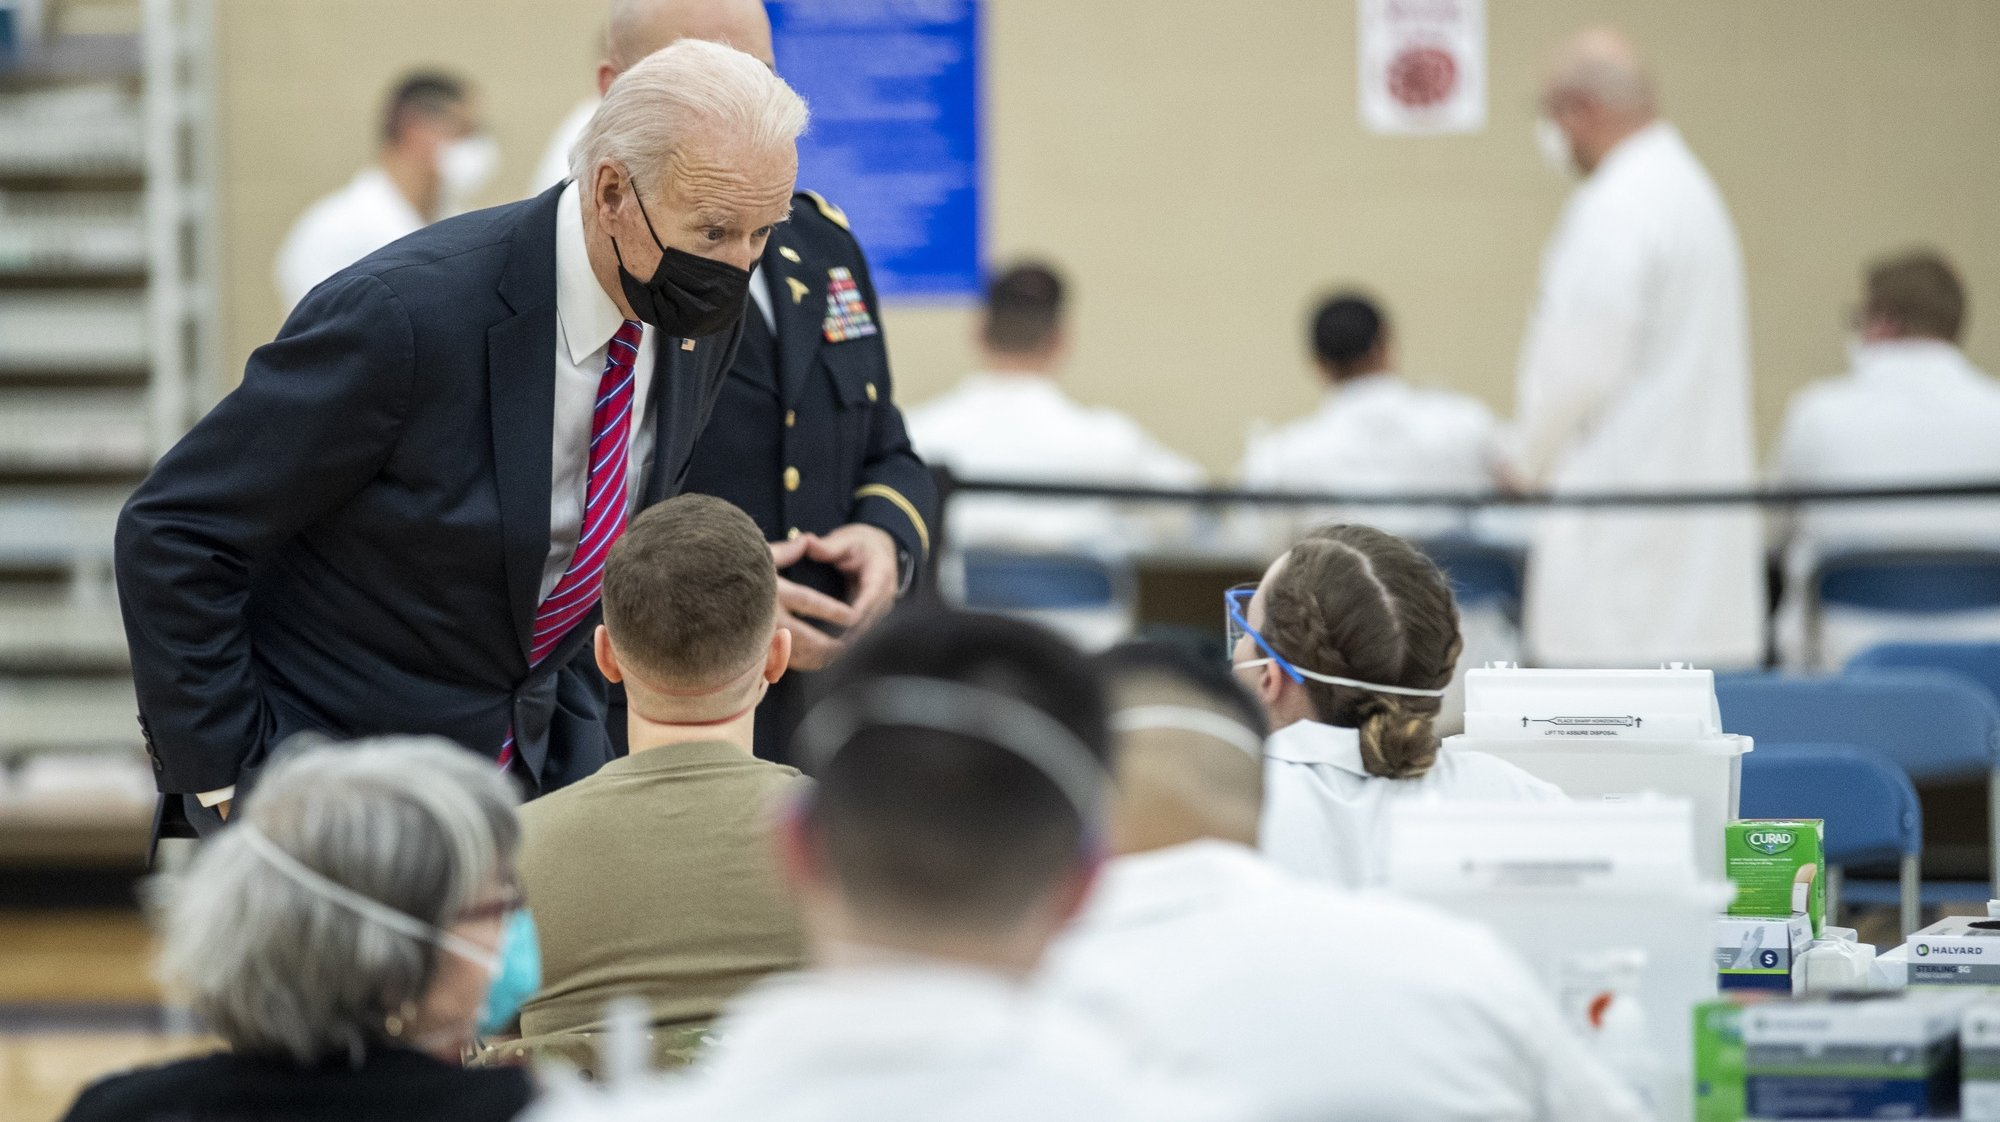 epaselect epa08974027 US President Joe Biden on a tour of a COVID-19 vaccination center at Walter Reed National Military Medical Center in Bethesda, Maryland, USA, 29 January 2021.  President Biden is to visit with wounded service members.  EPA/SHAWN THEW